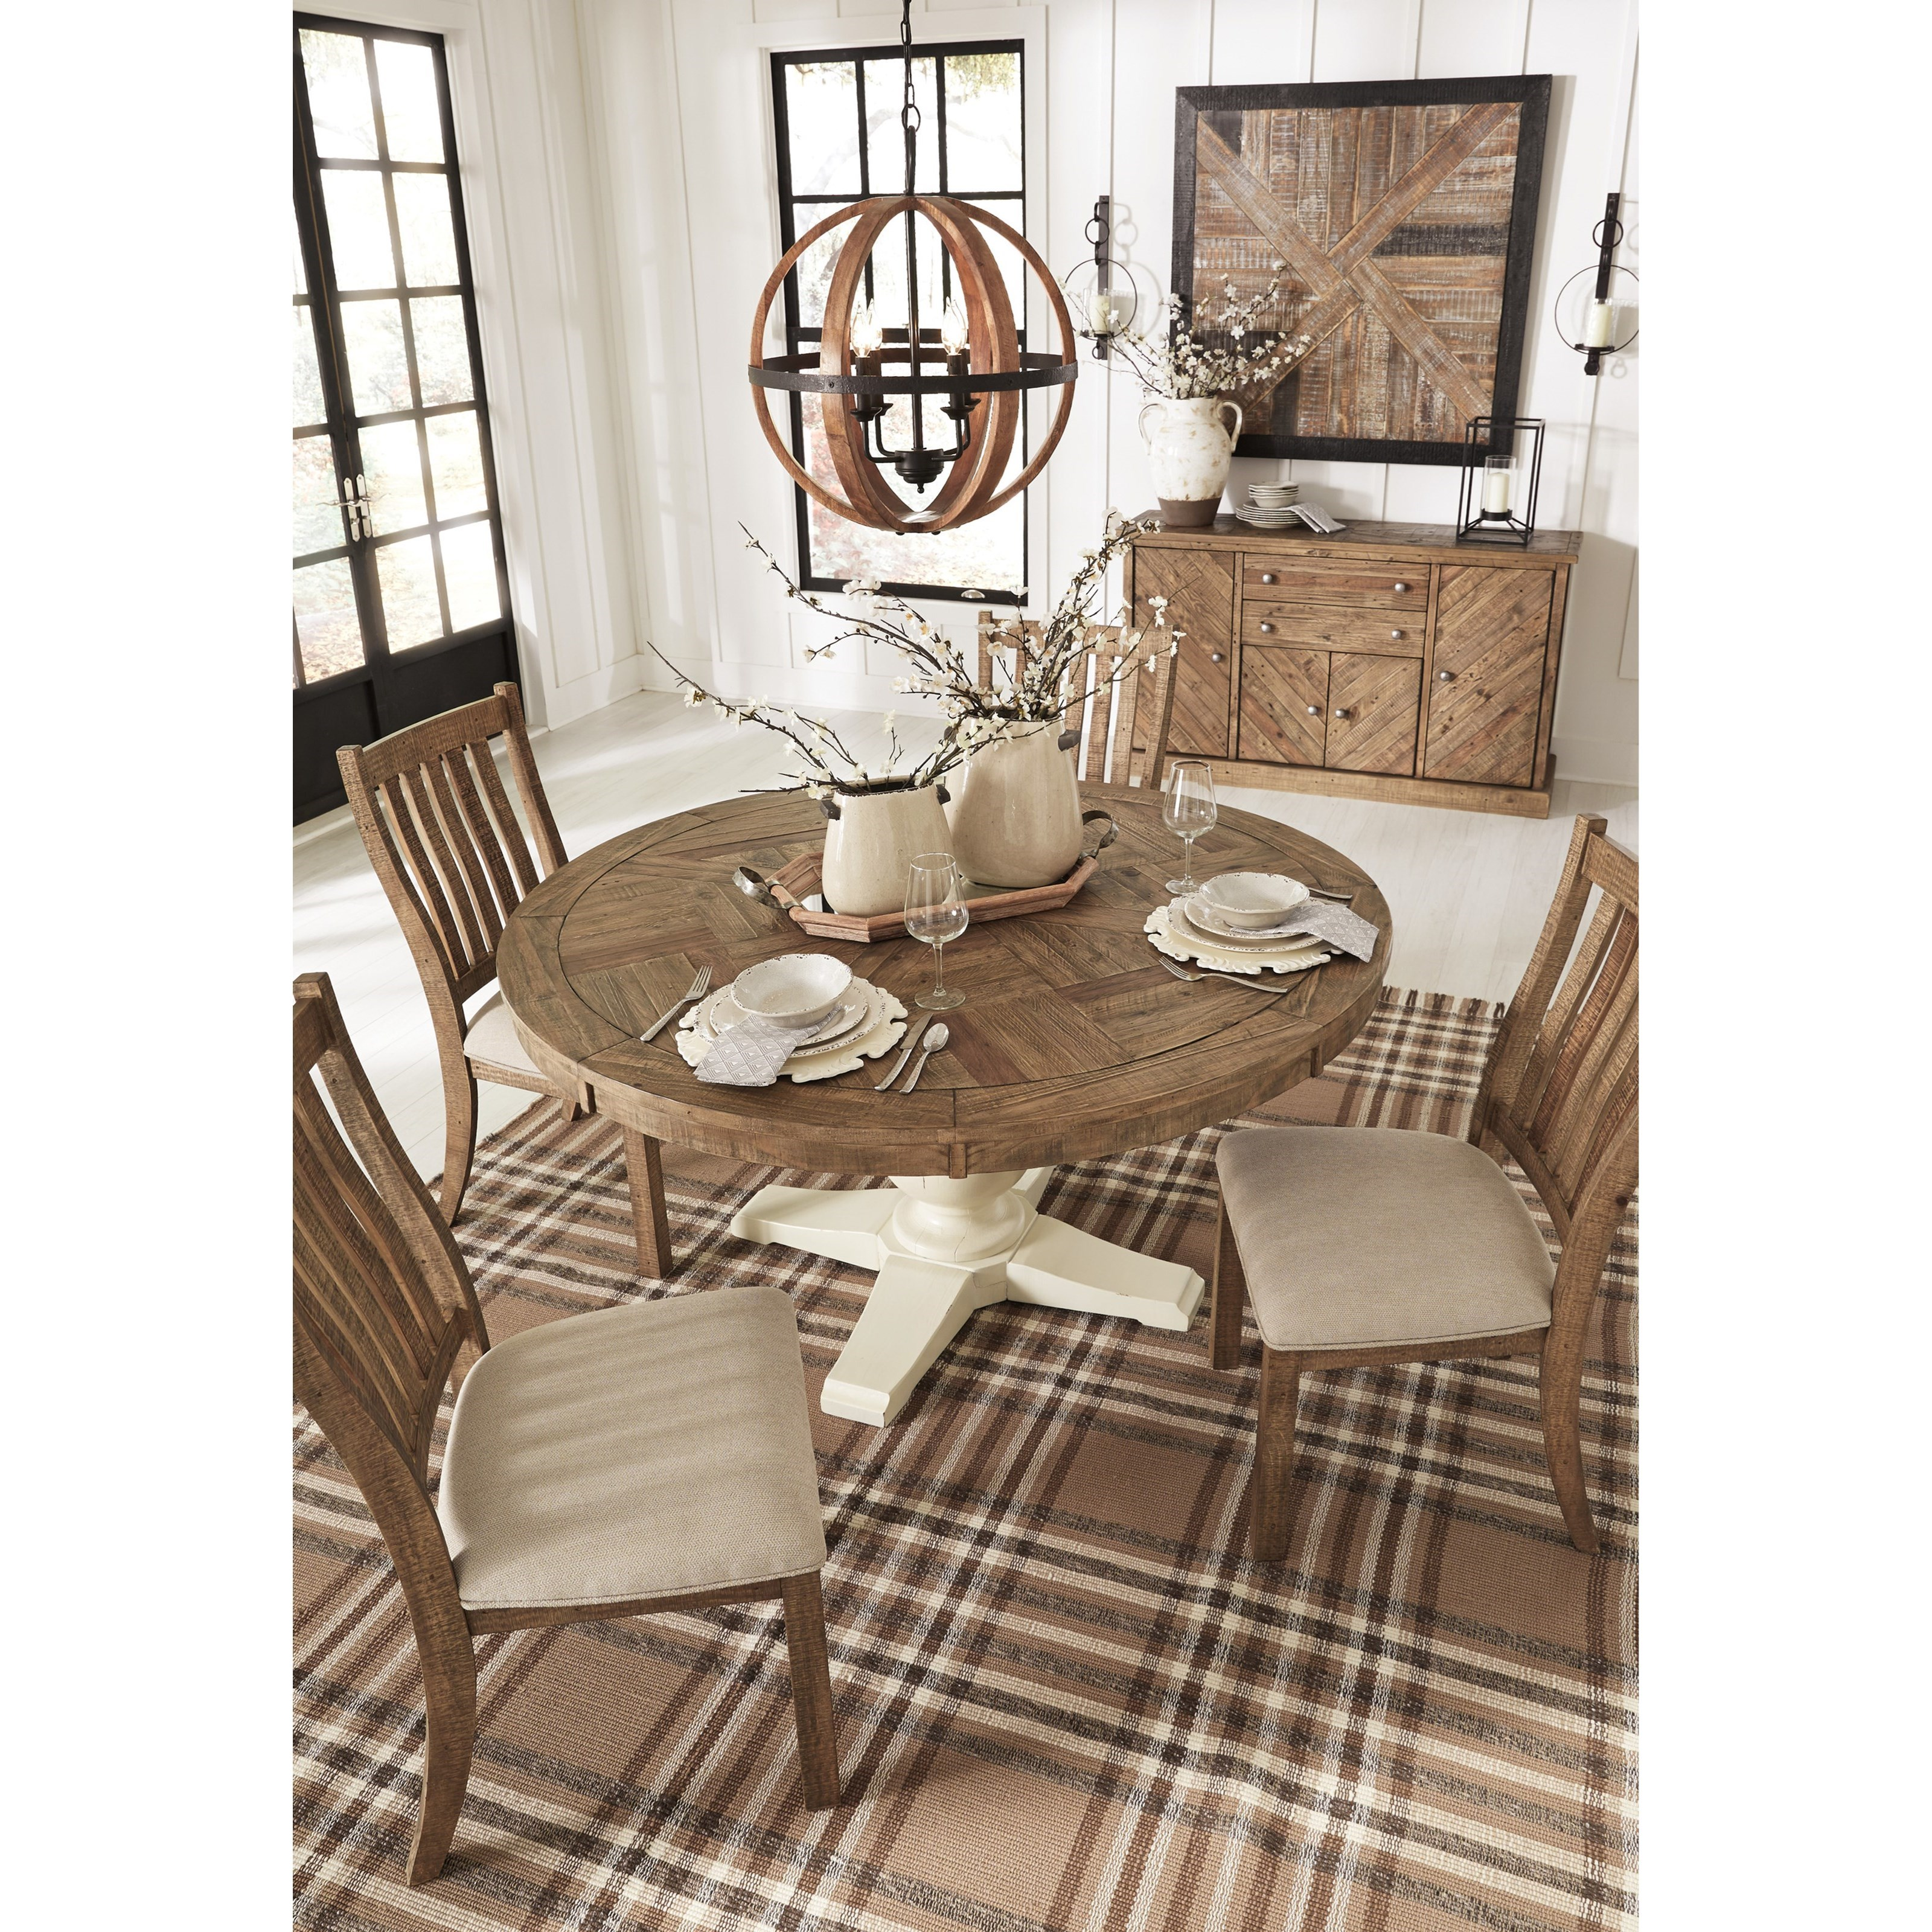 Ashley D754 05: Signature Design By Ashley Grindleburg 5 Piece Round Table